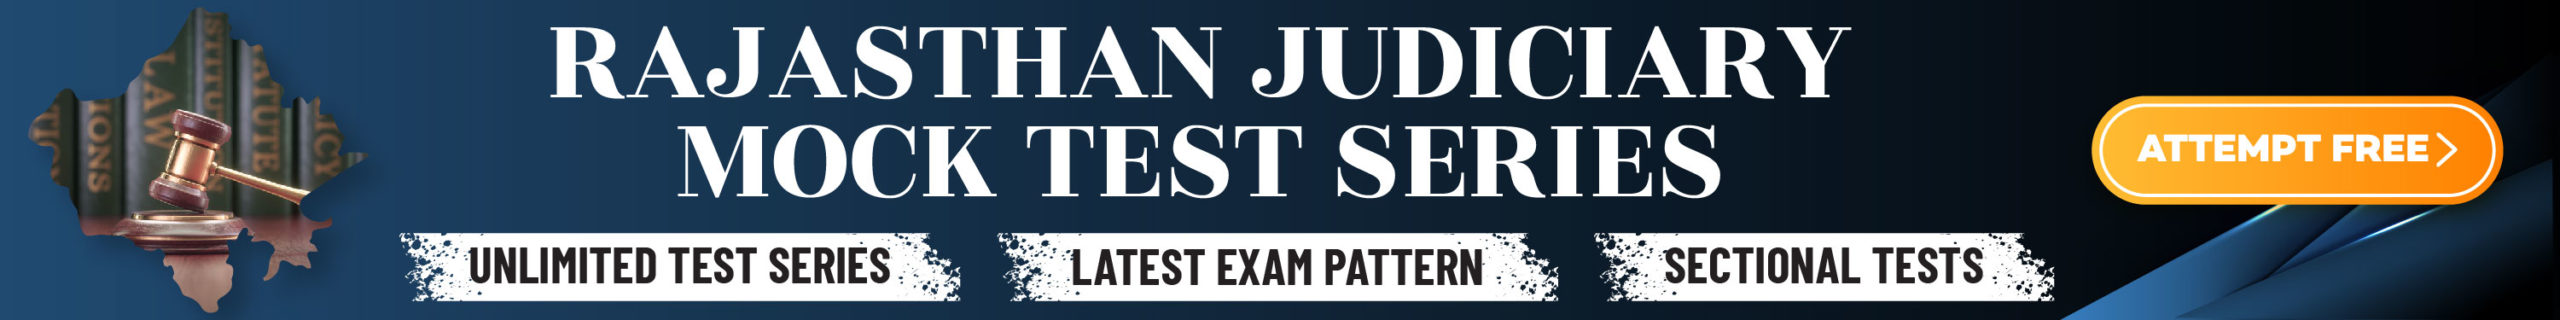 Rajasthan Mock Test Series